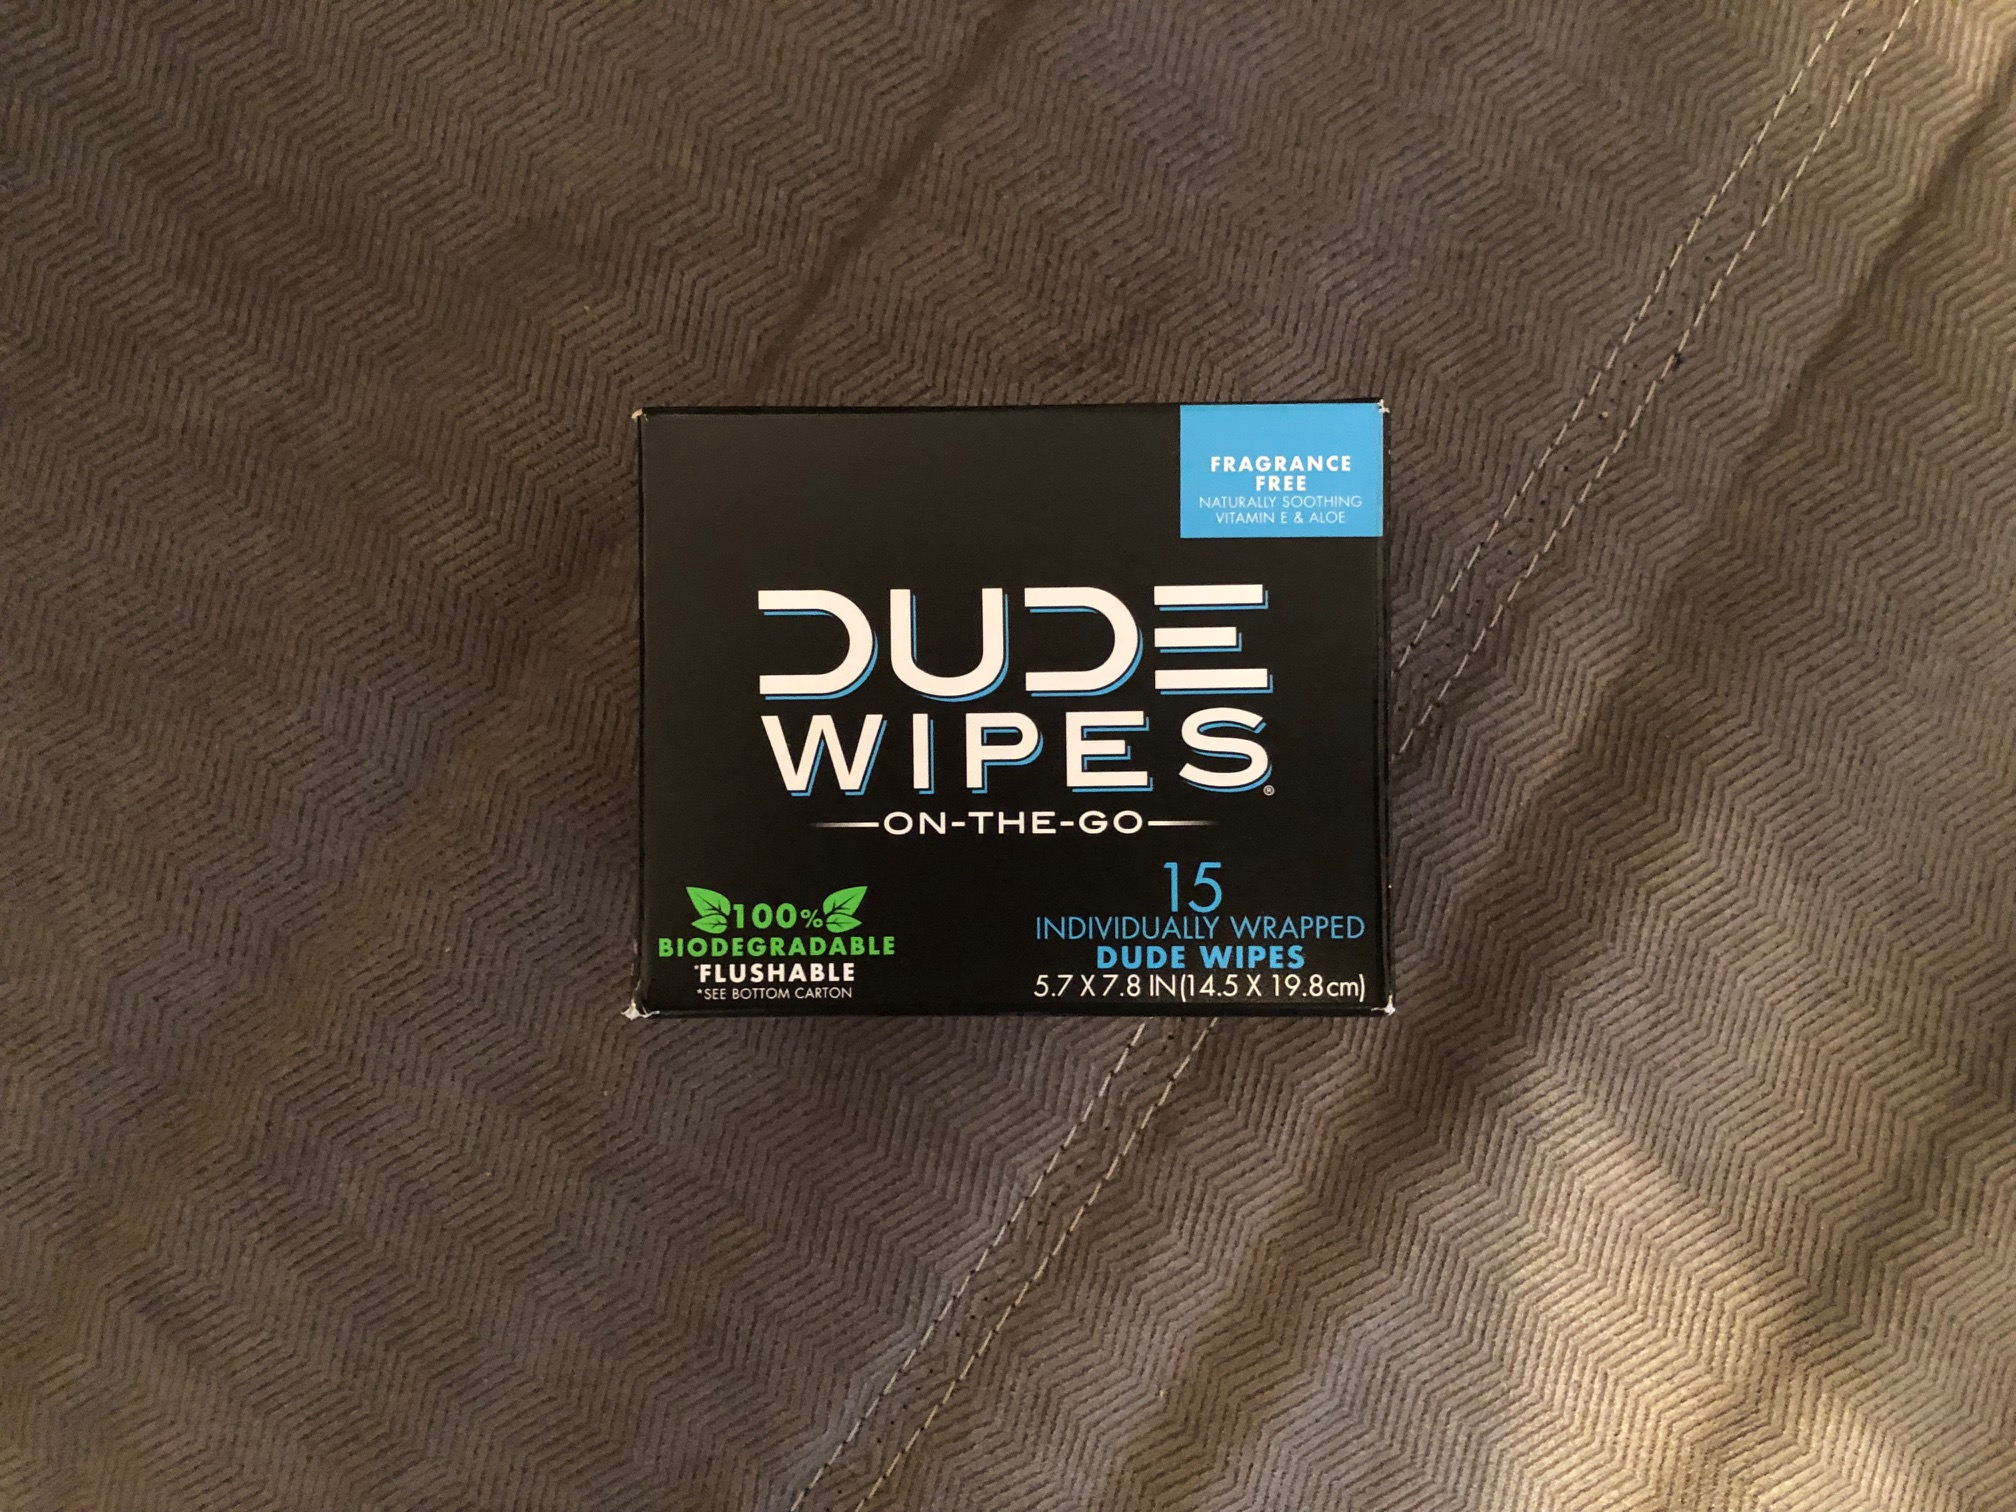 Individually wrapped wipes